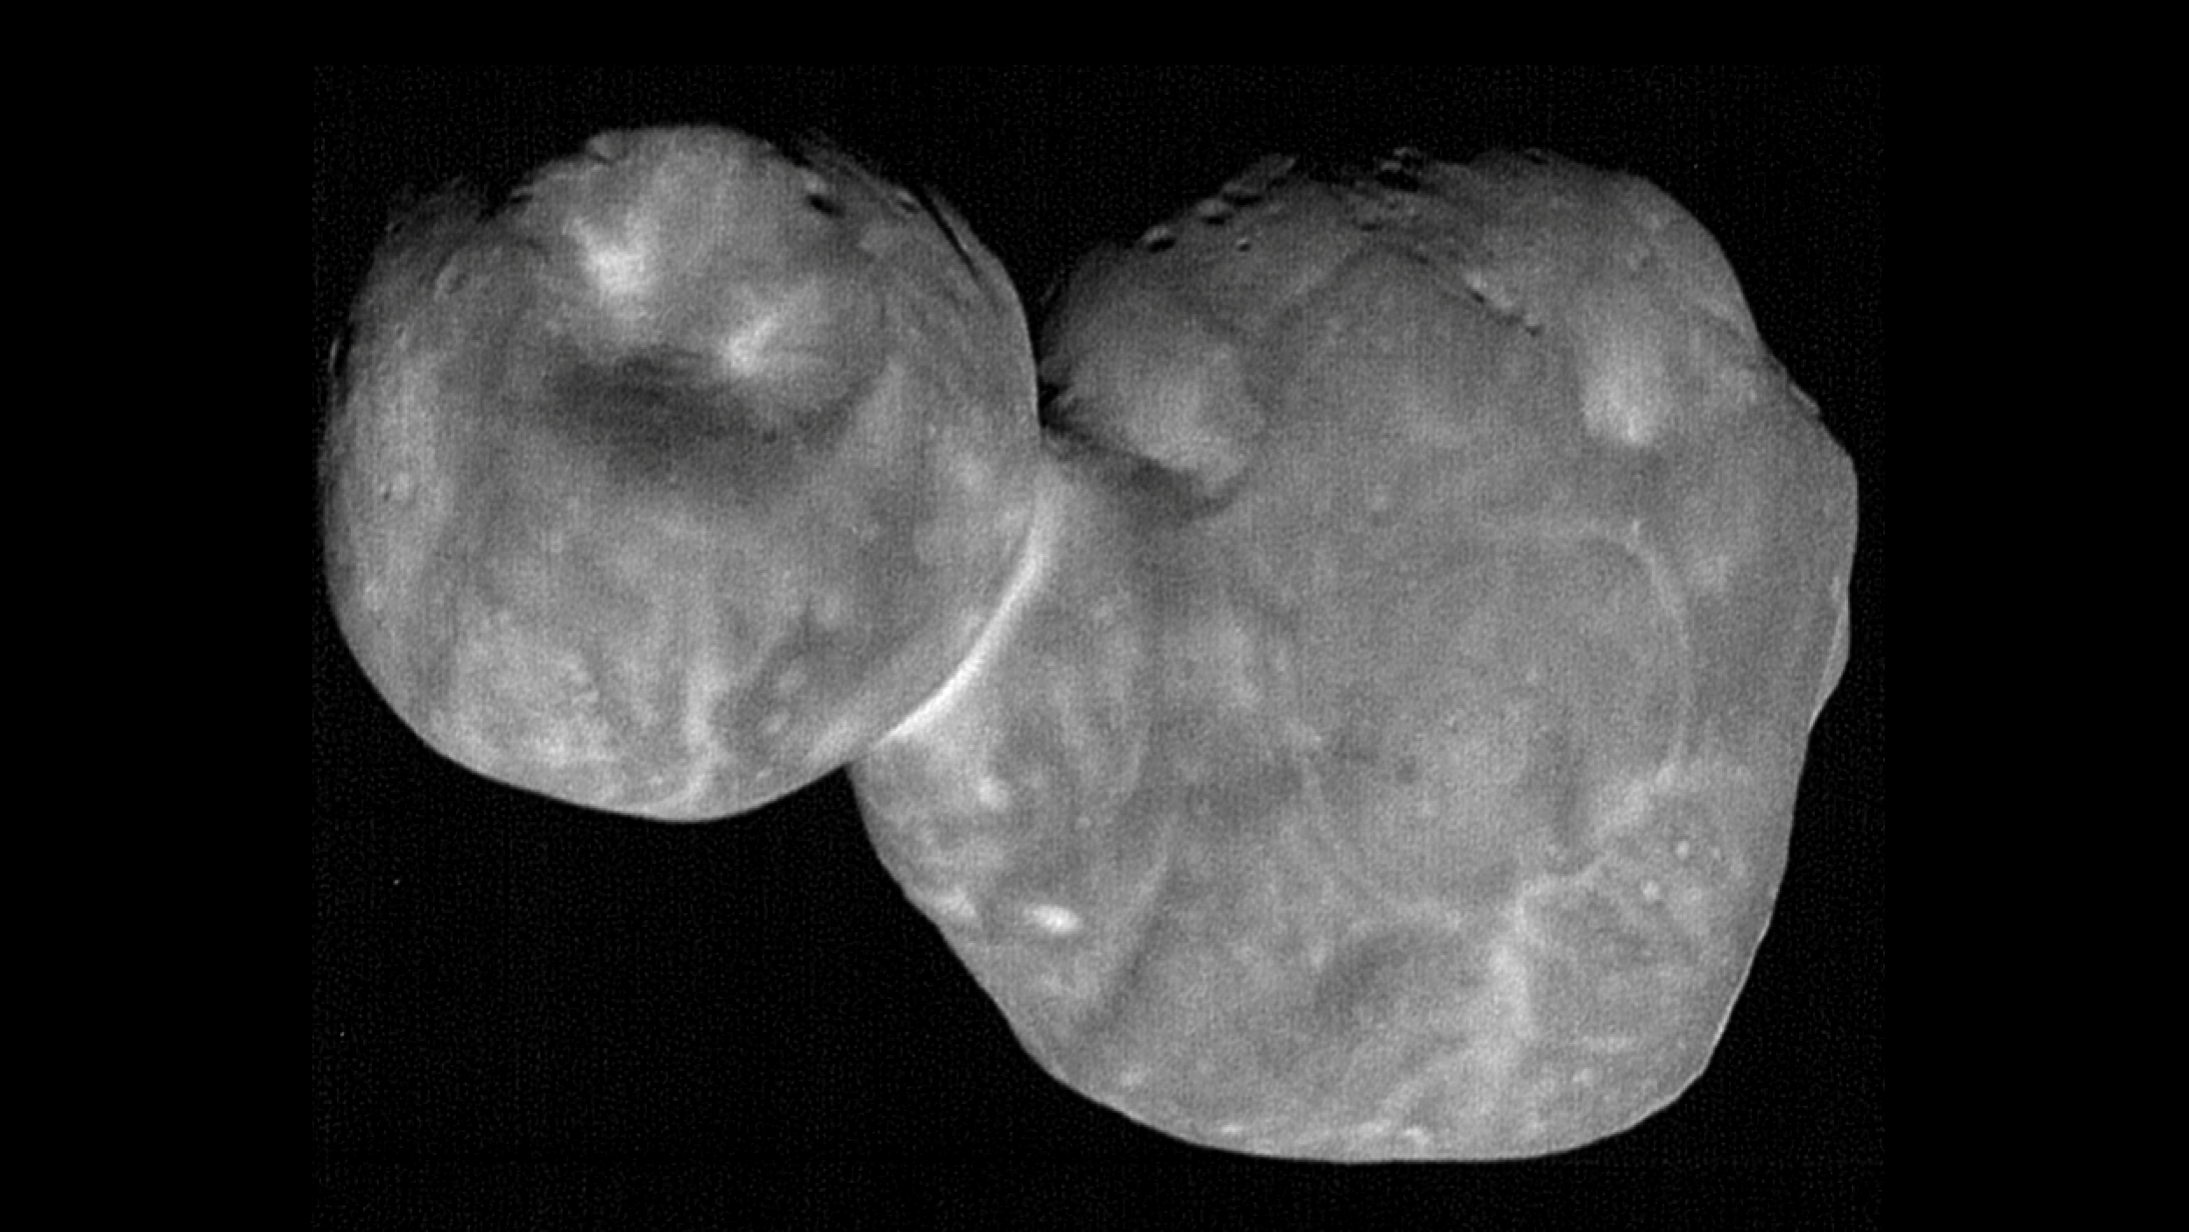 We're Finally Learning More About MU69, The Strange, Flat Rock In The Outer Solar System